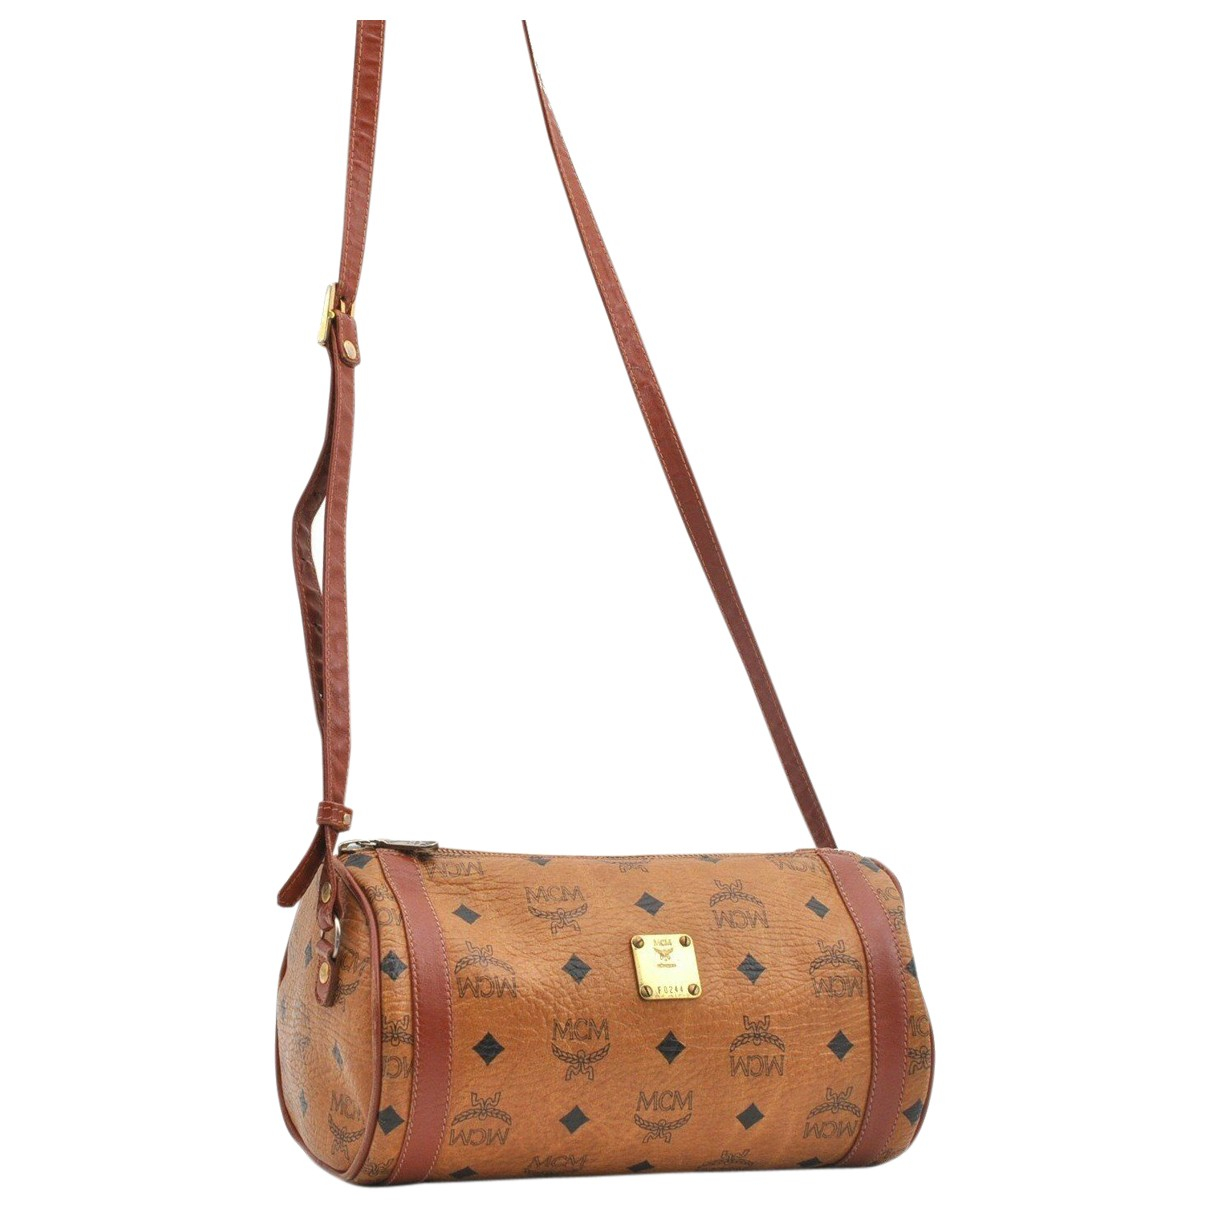 Mcm N Brown Leather handbag for Women N